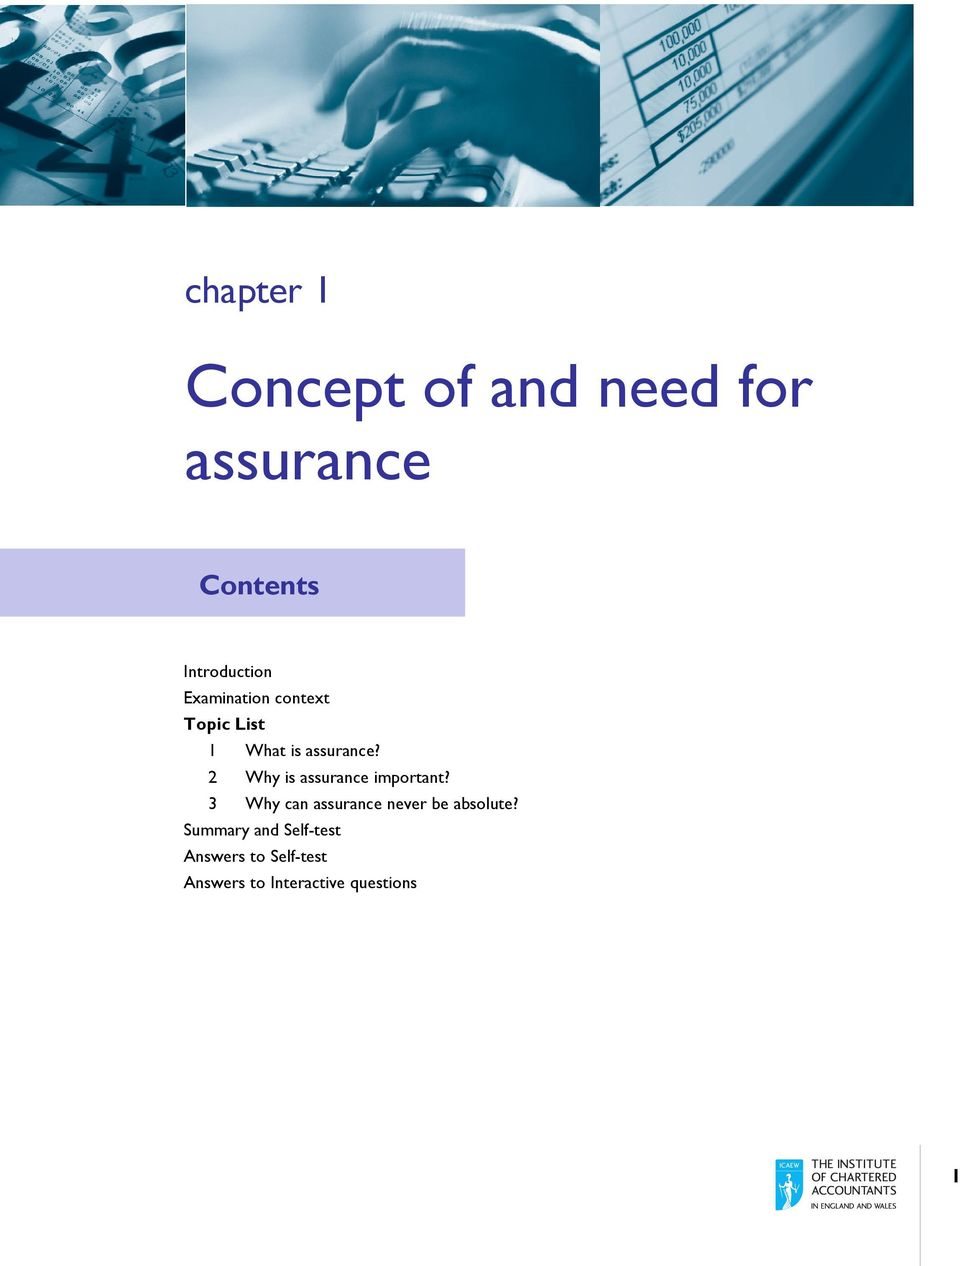 2 Why is assurance important?